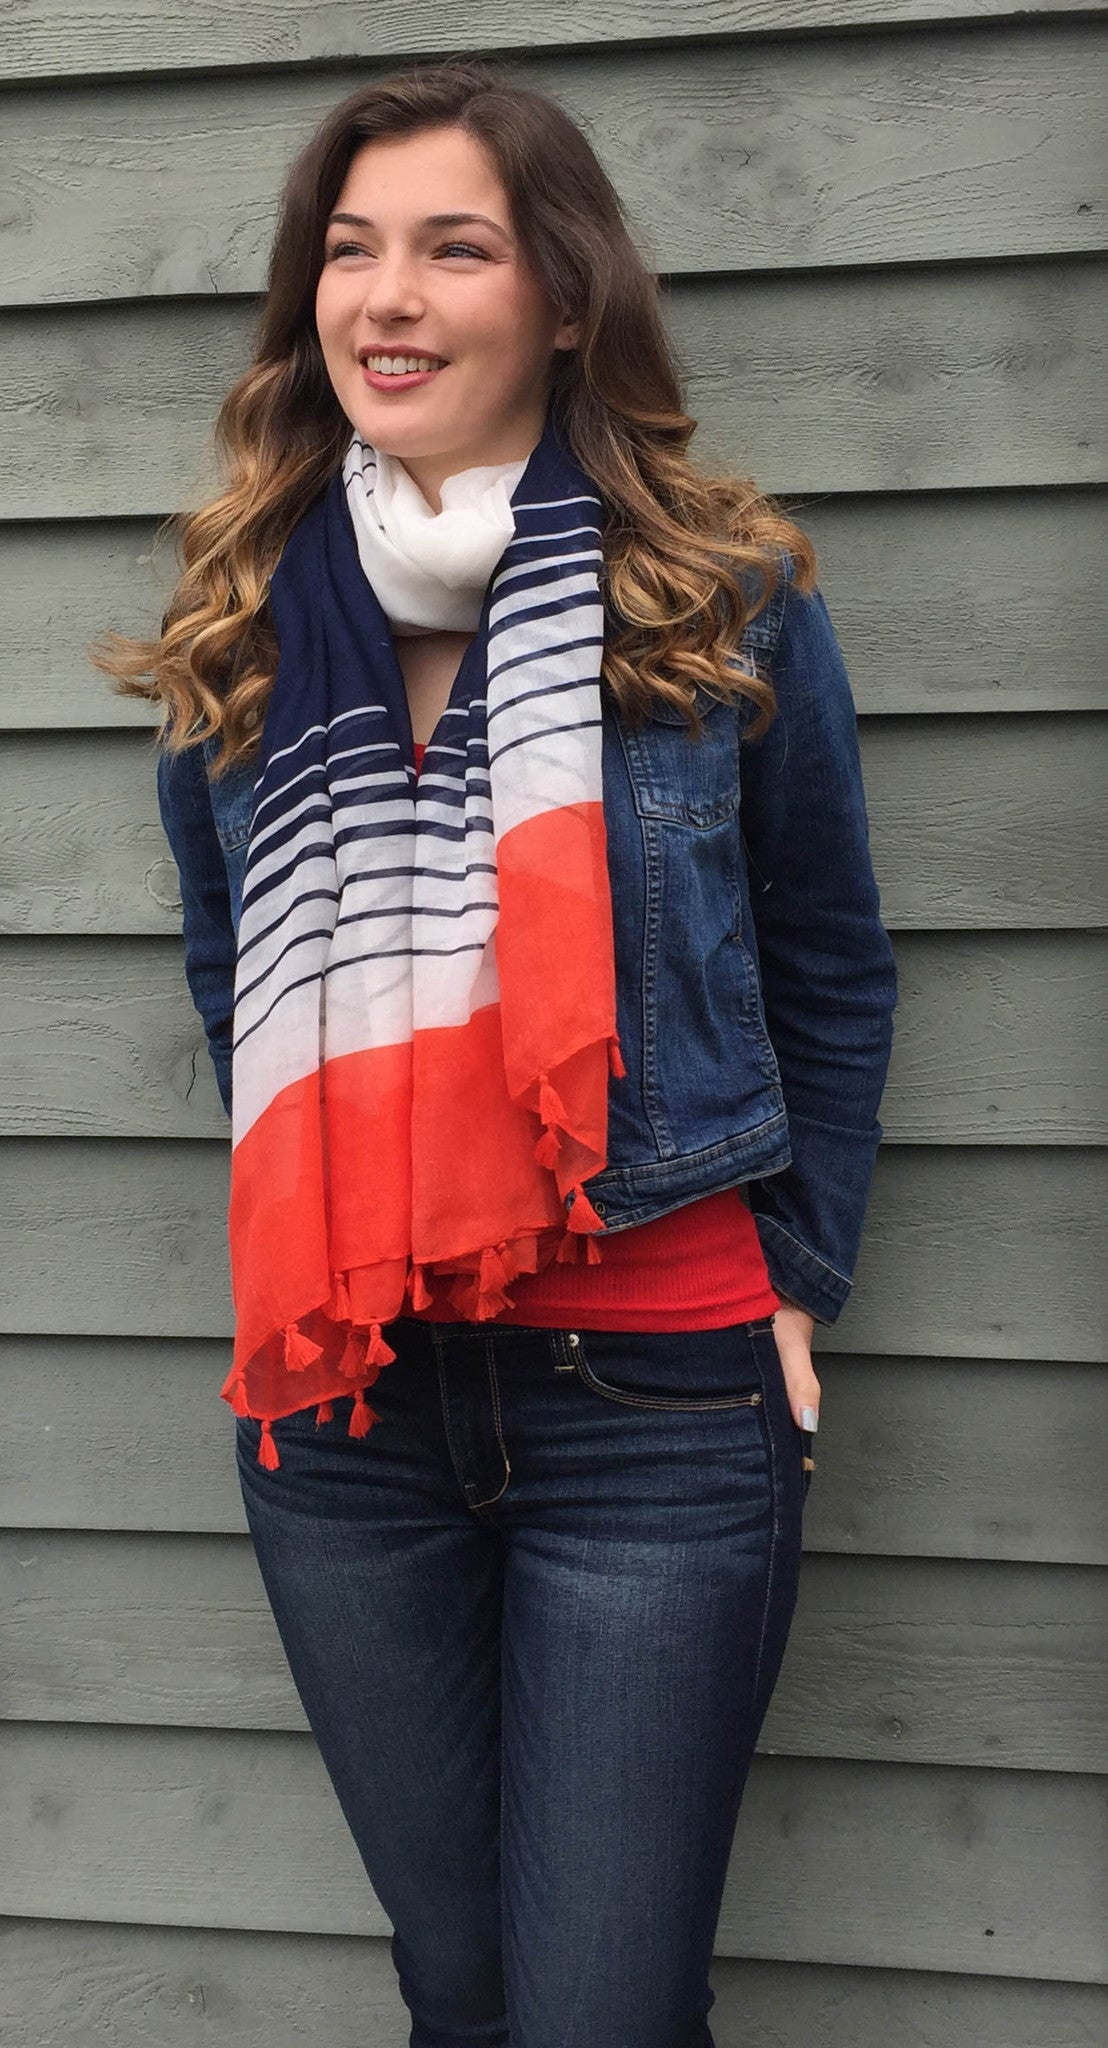 b0b32a526 Independence Day Sale Red White Blue Scarf